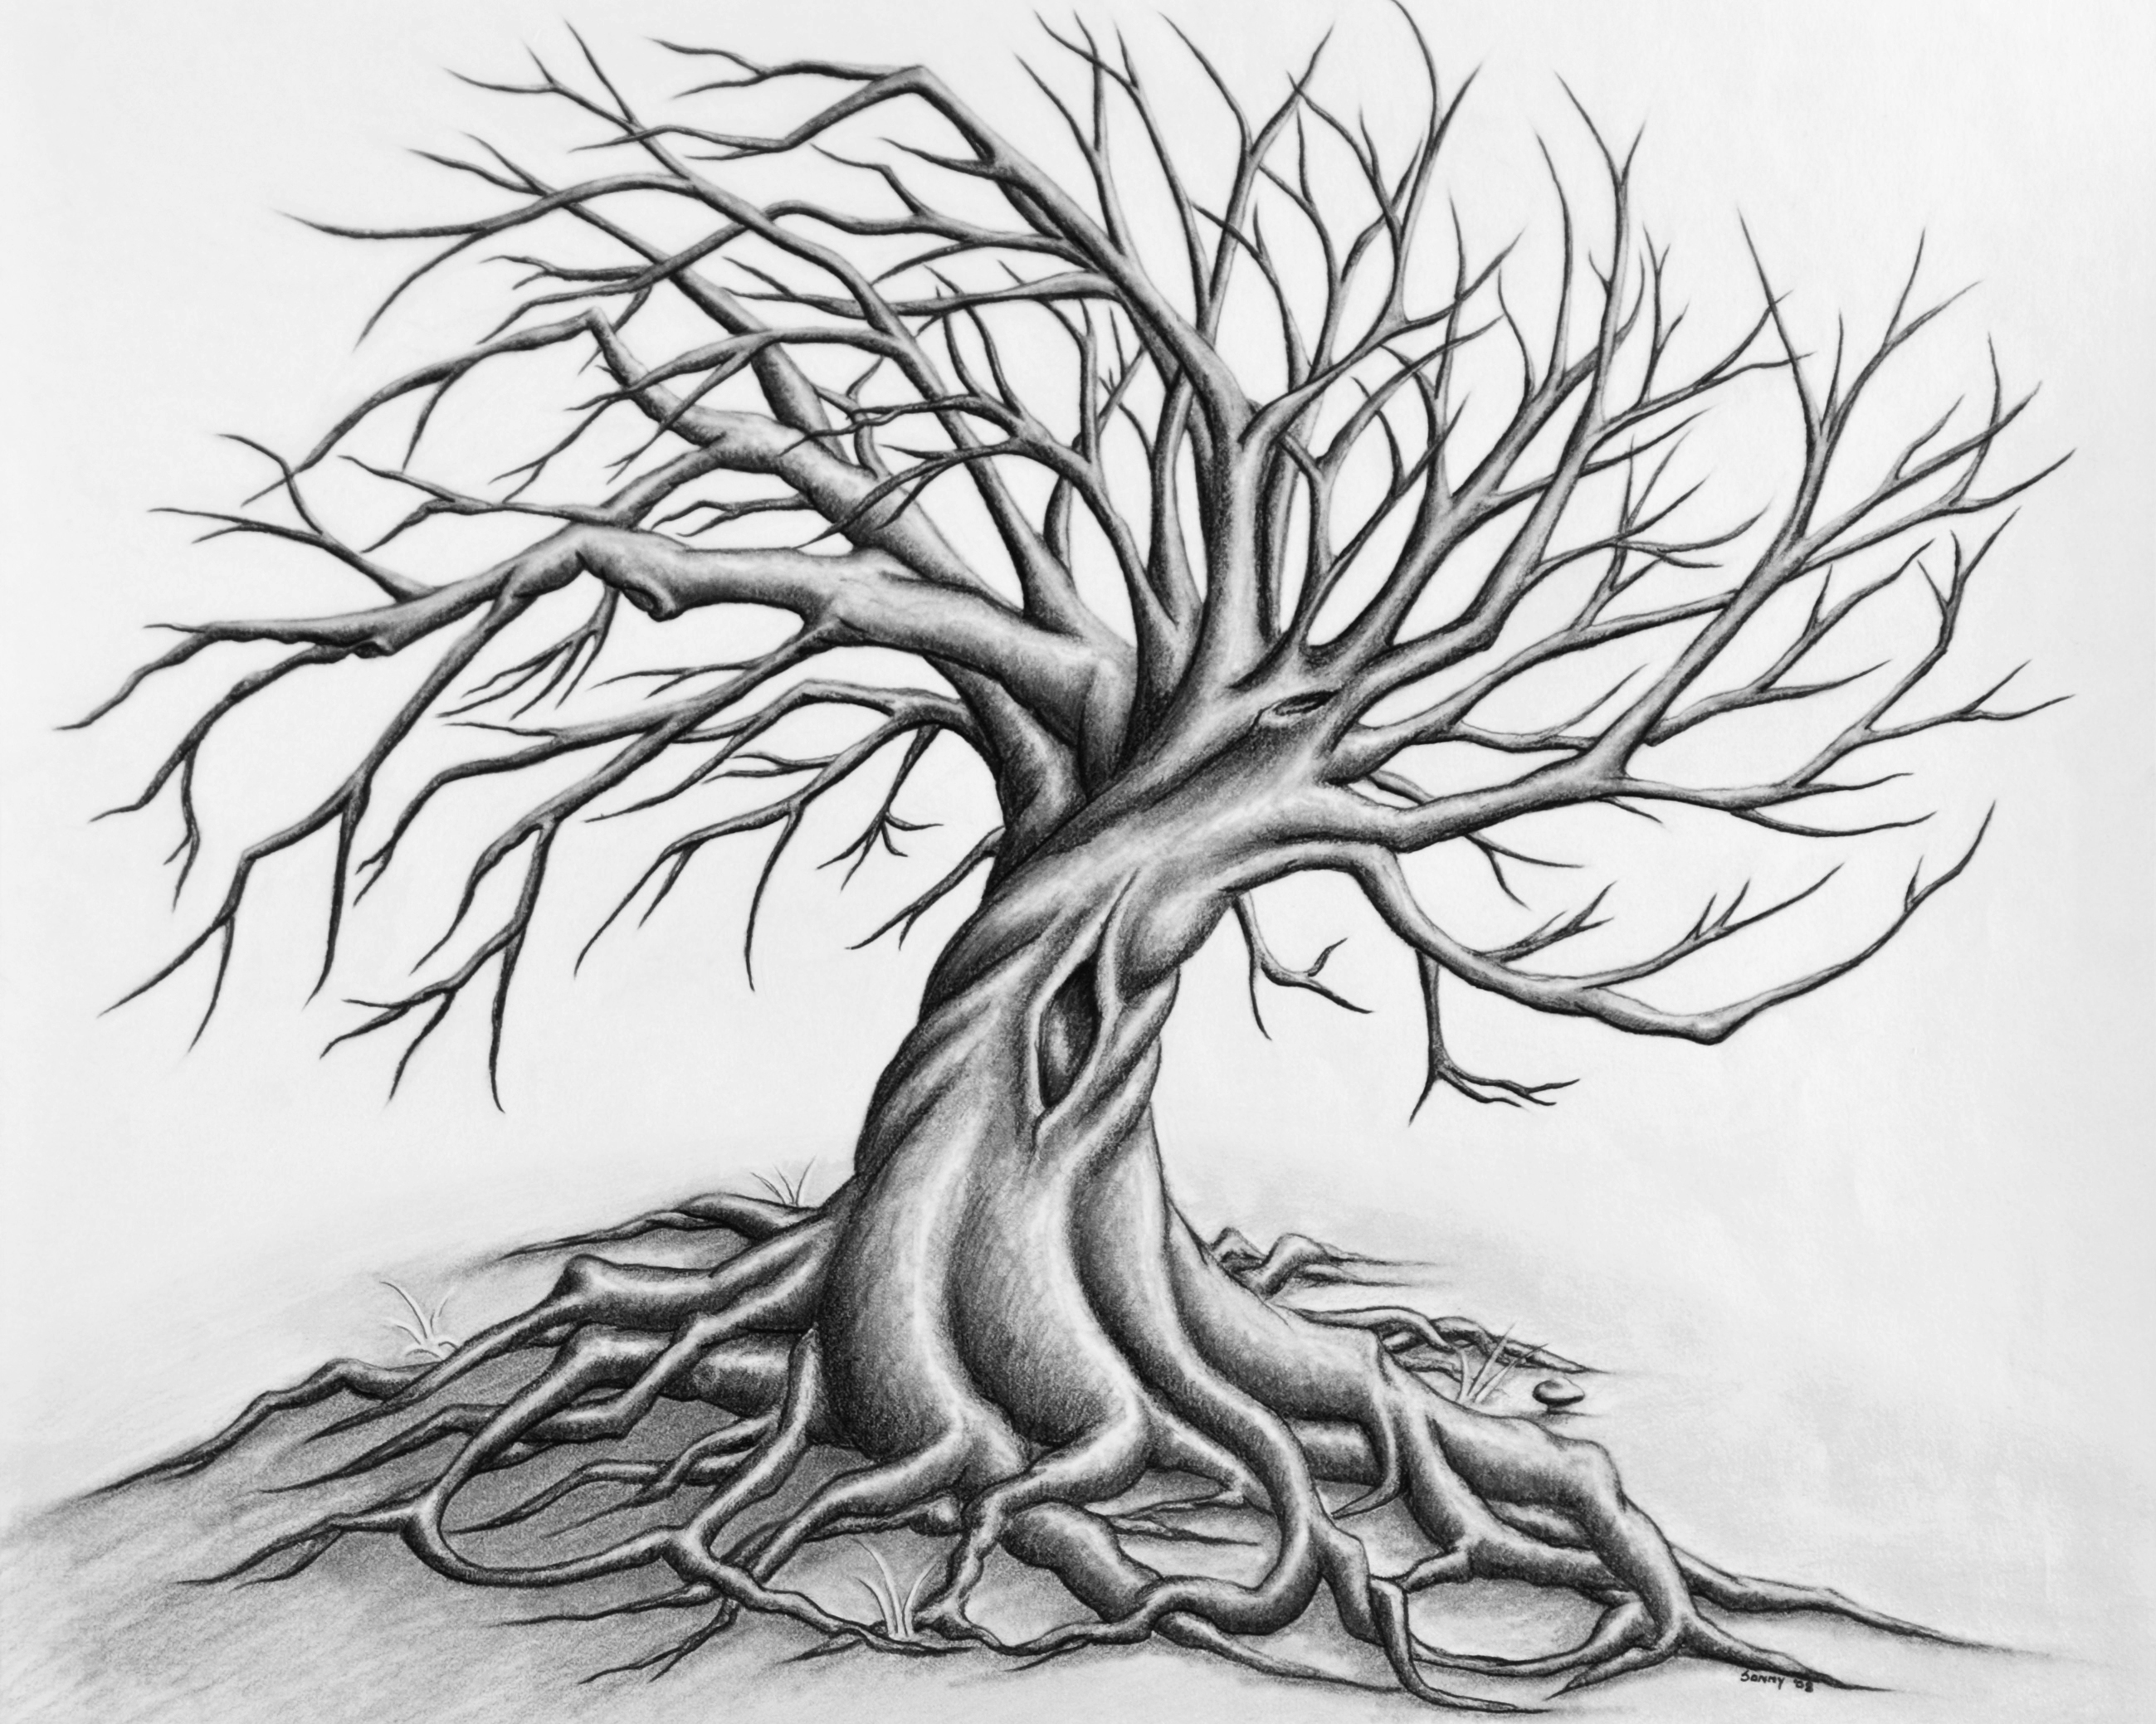 Drawn spirit twisted By by Tree Drawing by